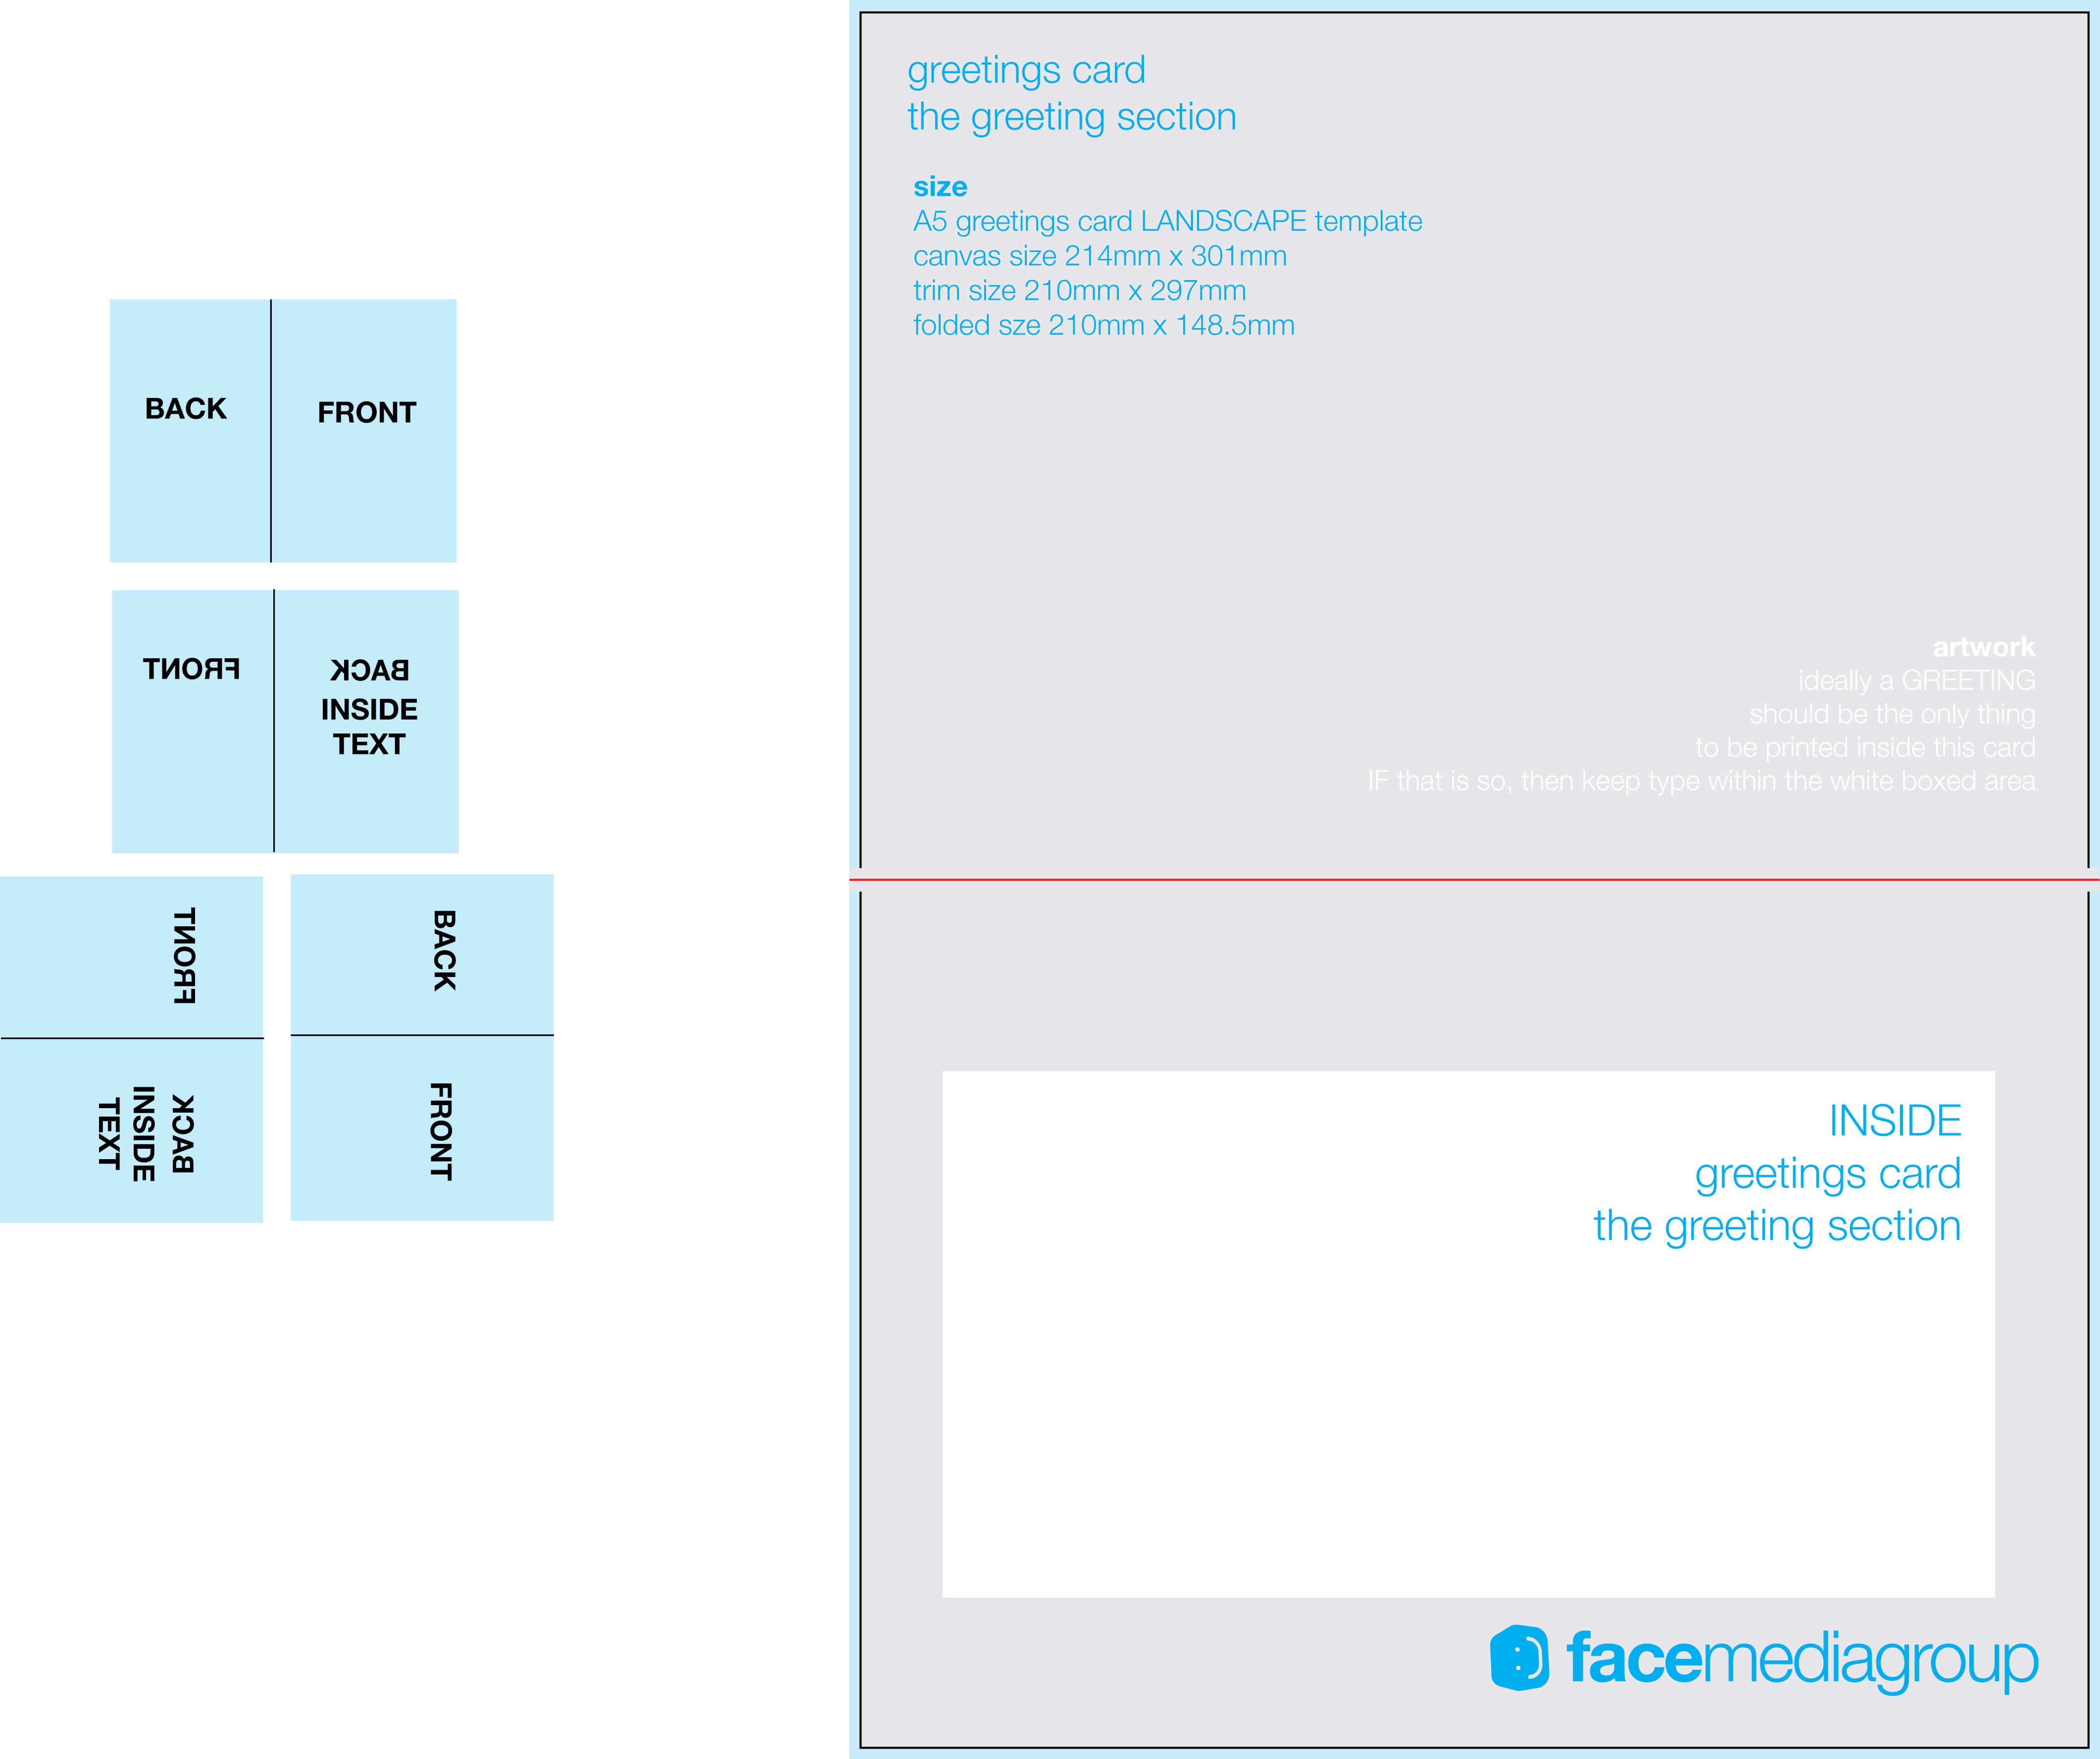 Free Blank Greetings Card Artwork Templates For Download Throughout 4X6 Photo Card Template Free